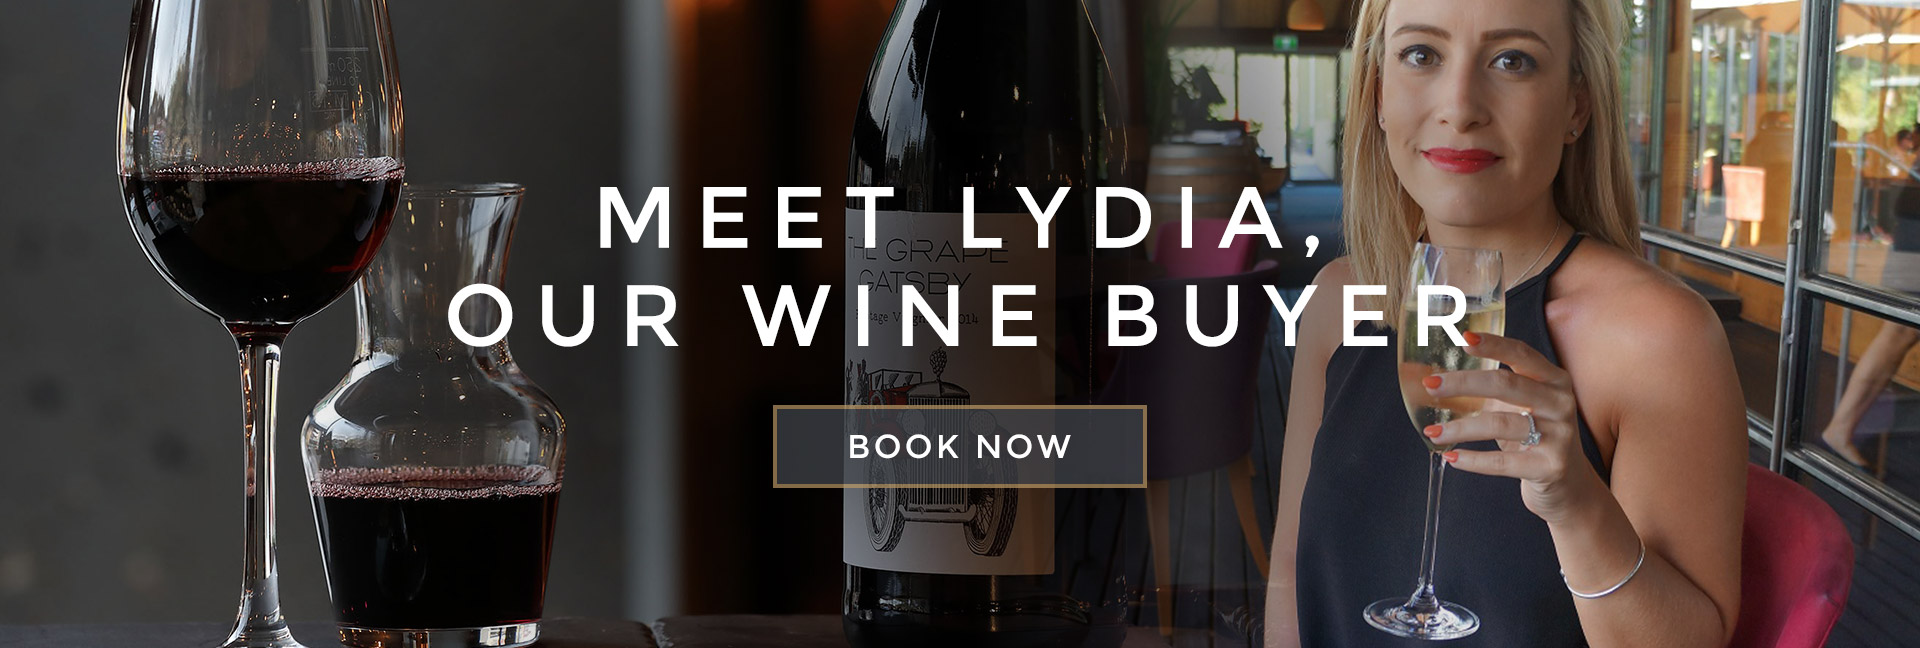 Meet Lydia, our wine buyer at All Bar One Harrogate